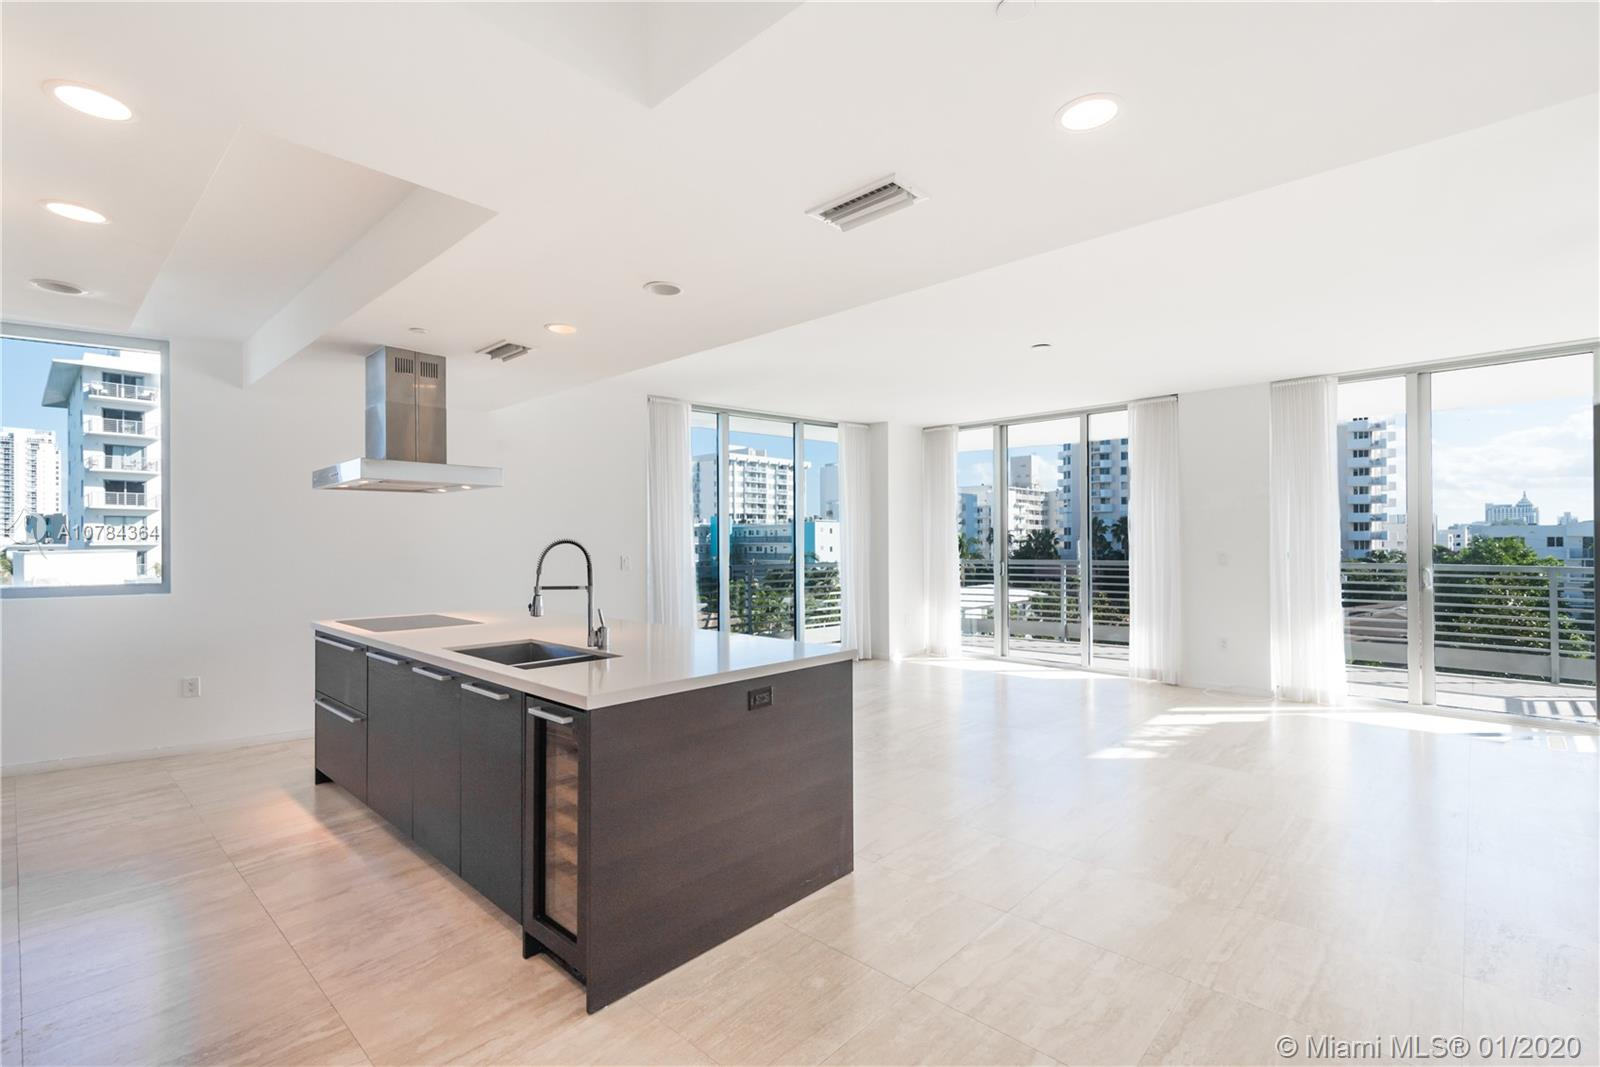 Luxury boutique waterfront living at Capri South Beach.  This NE Corner 2 bedroom & 2.5 bath residence with views of Miami Beach Skyline, floor to ceiling impact windows, Poggenpohl cabinetry in Kitchen and bathrooms; Subzero, Wolf and Miele appliances, custom closet system in Master bedroom, 24 by 24 travertine flooring both inside and on balcony. Capri is steps from Lincoln Road, offers a private marina, fitness center, bayfront pool, jacuzzi, front desk, valet and security. Boat dock available for purchase.  1 Bedroom residence next door also available for purchase, for possible combination.